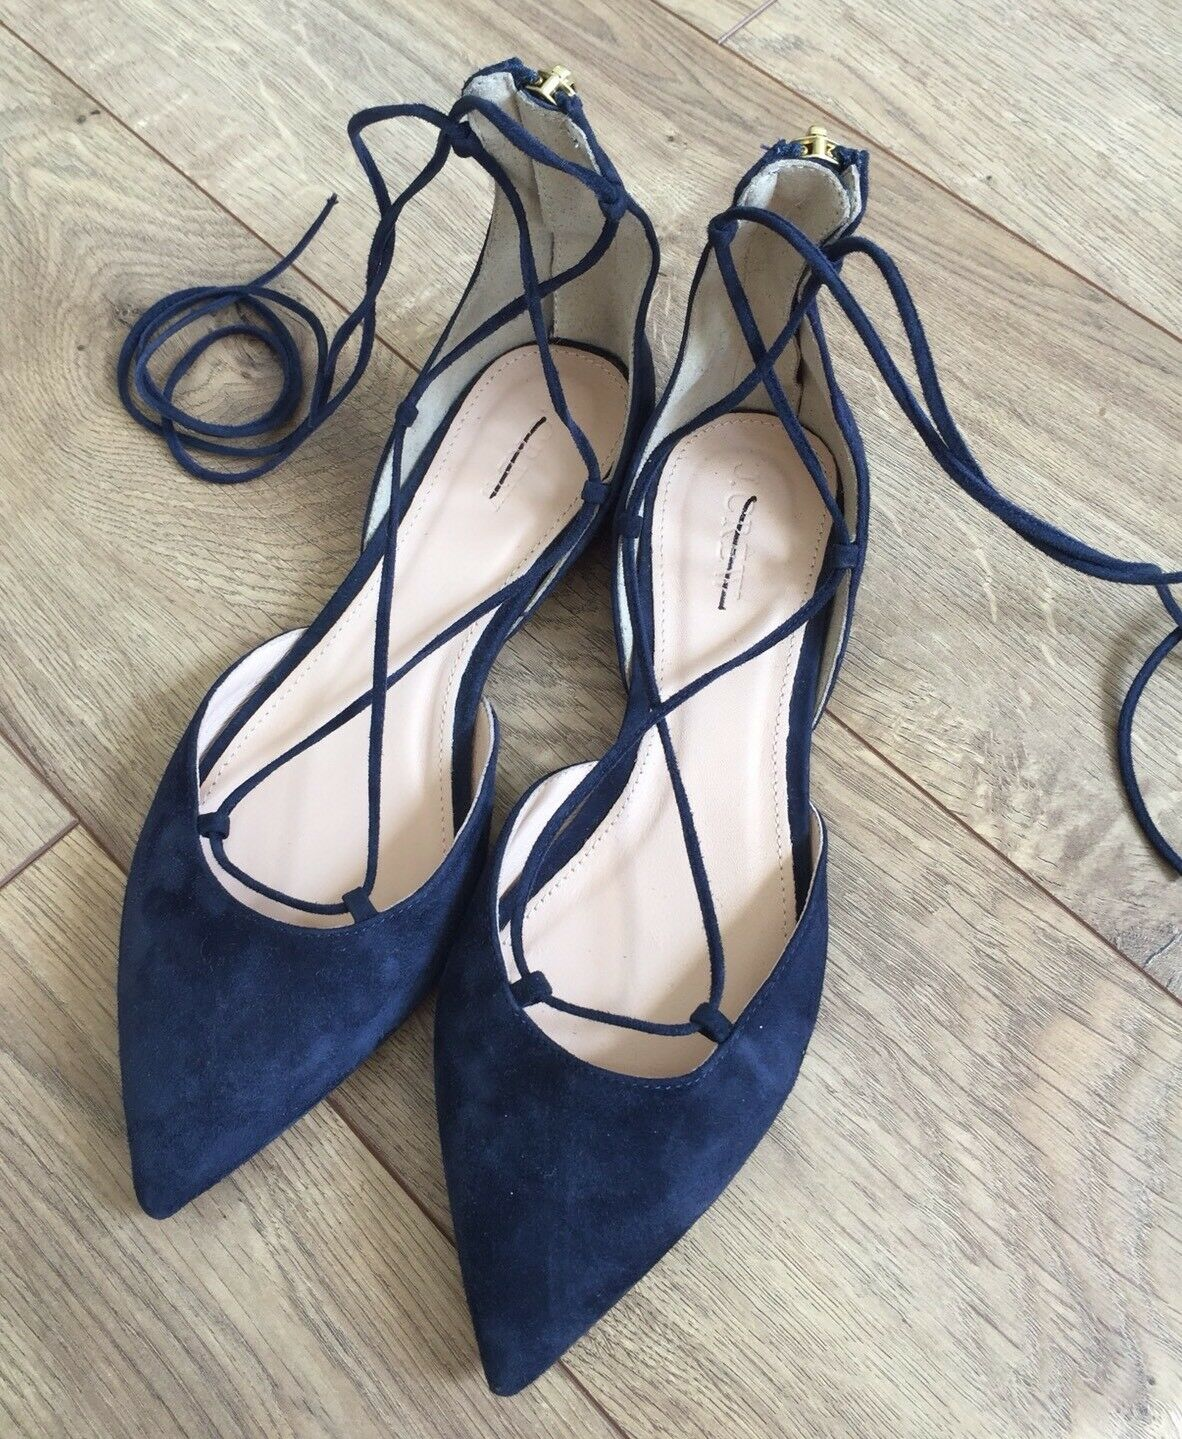 JCrew $168 Suede Lace-Up Flats Shoes 6 Navy Blue G0880 Shoes Flats 7bb96b